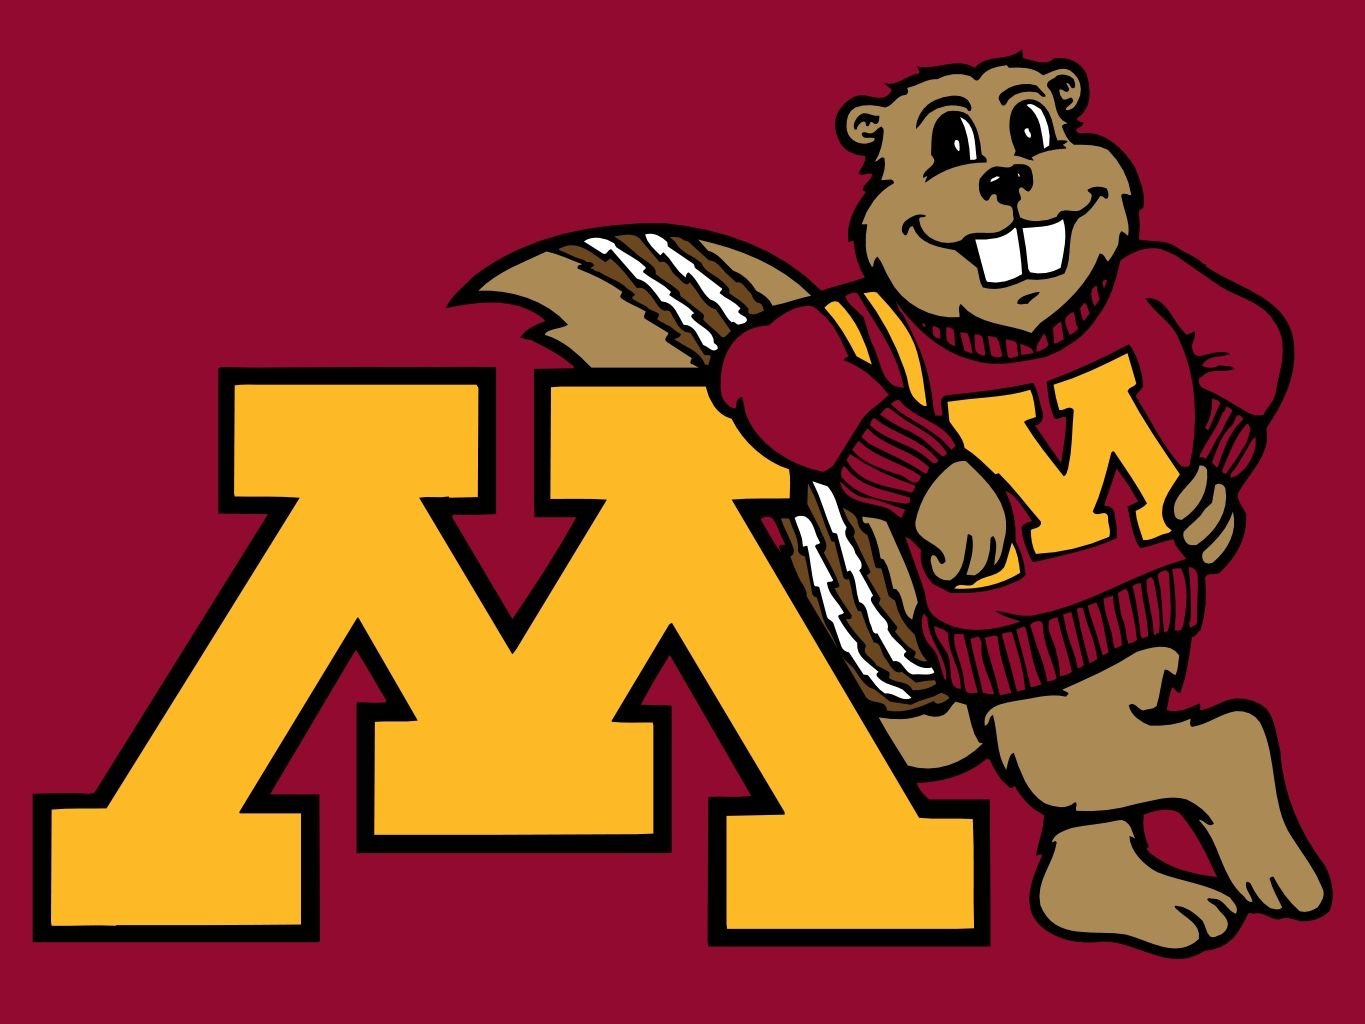 Minnesota Gophers Minnesota Gophers Minnesota Golden Gophers Gopher